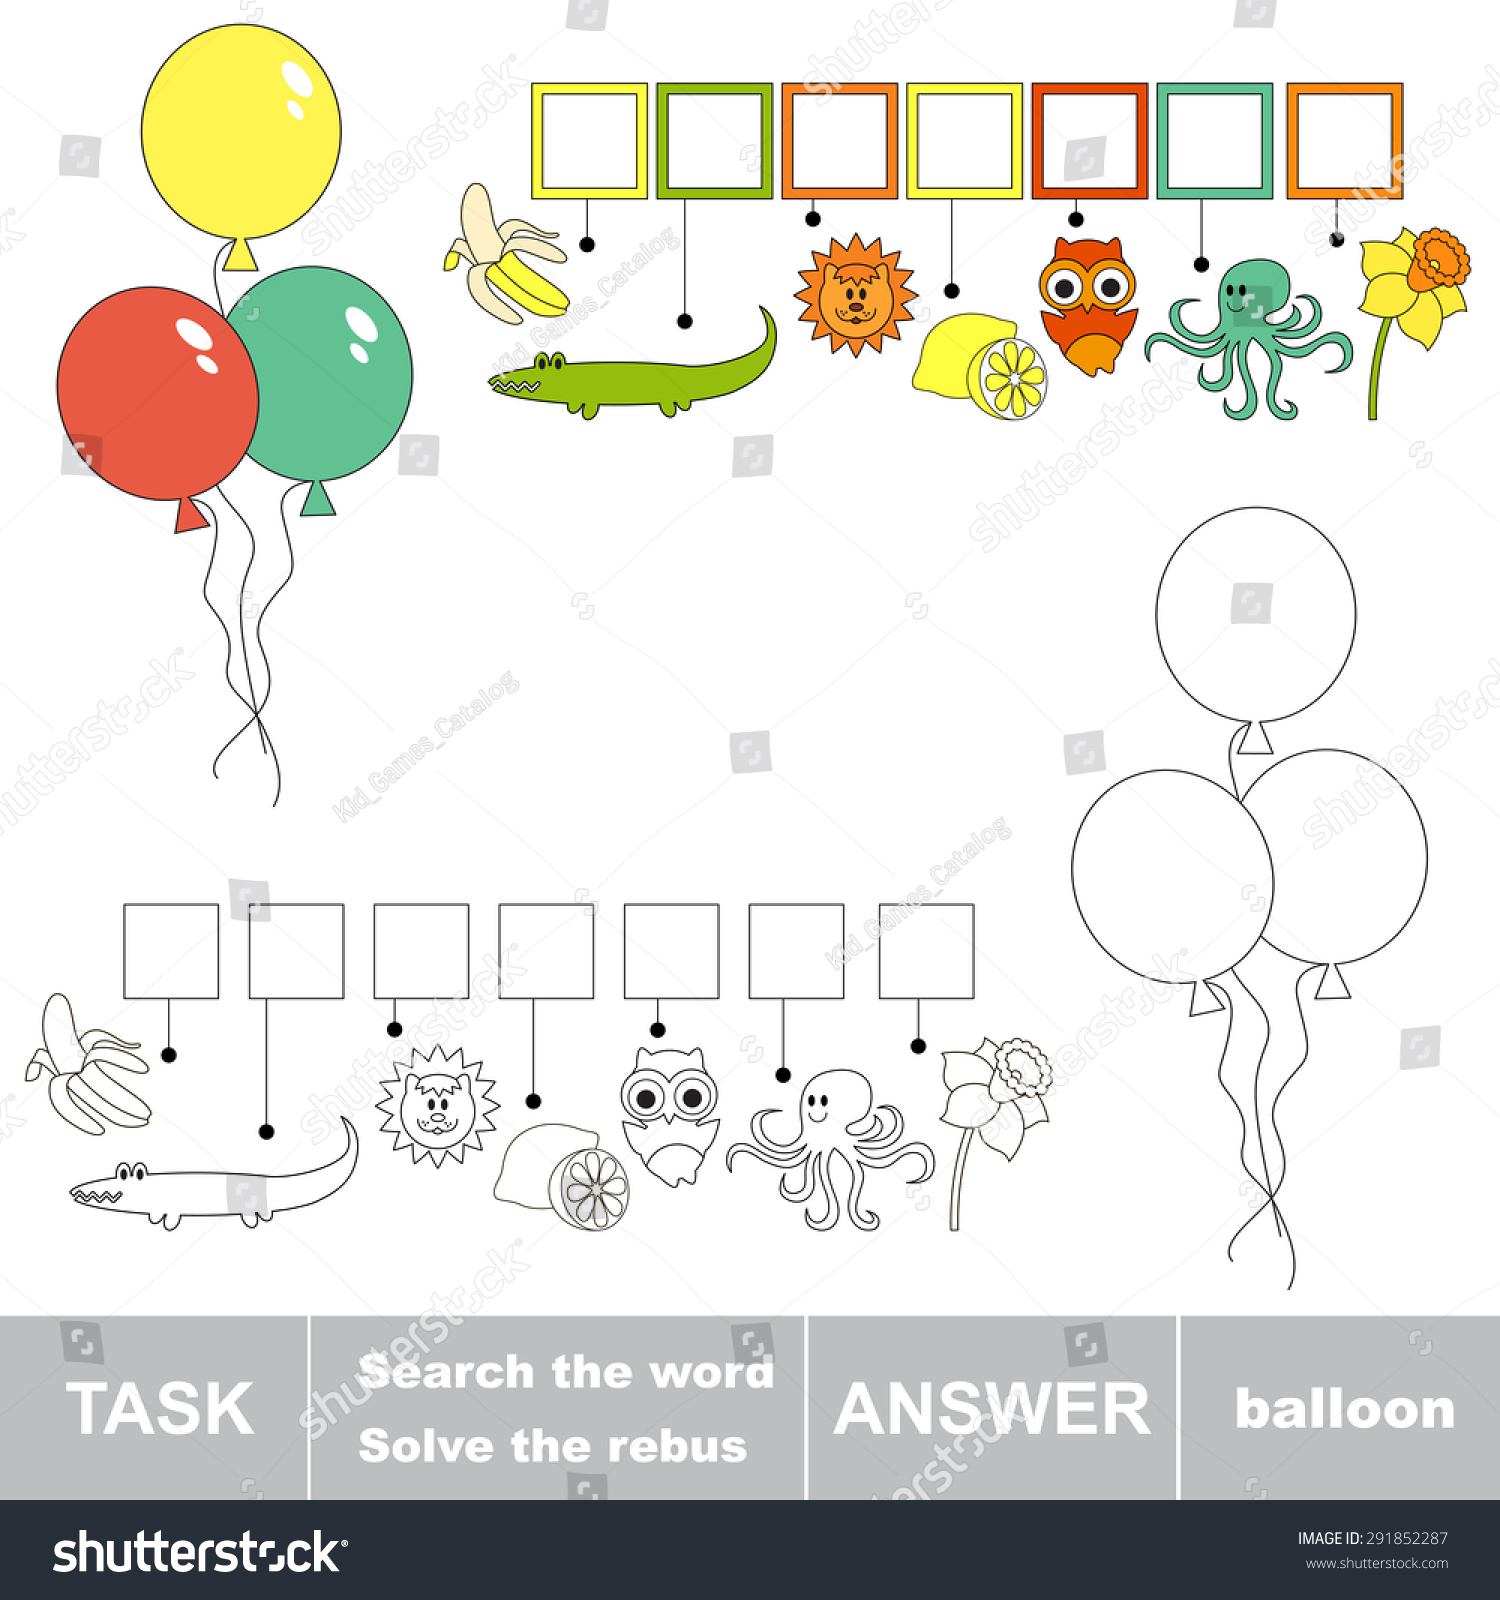 Rebus Kid Game Search Word Balloon Stock Vector Royalty Free